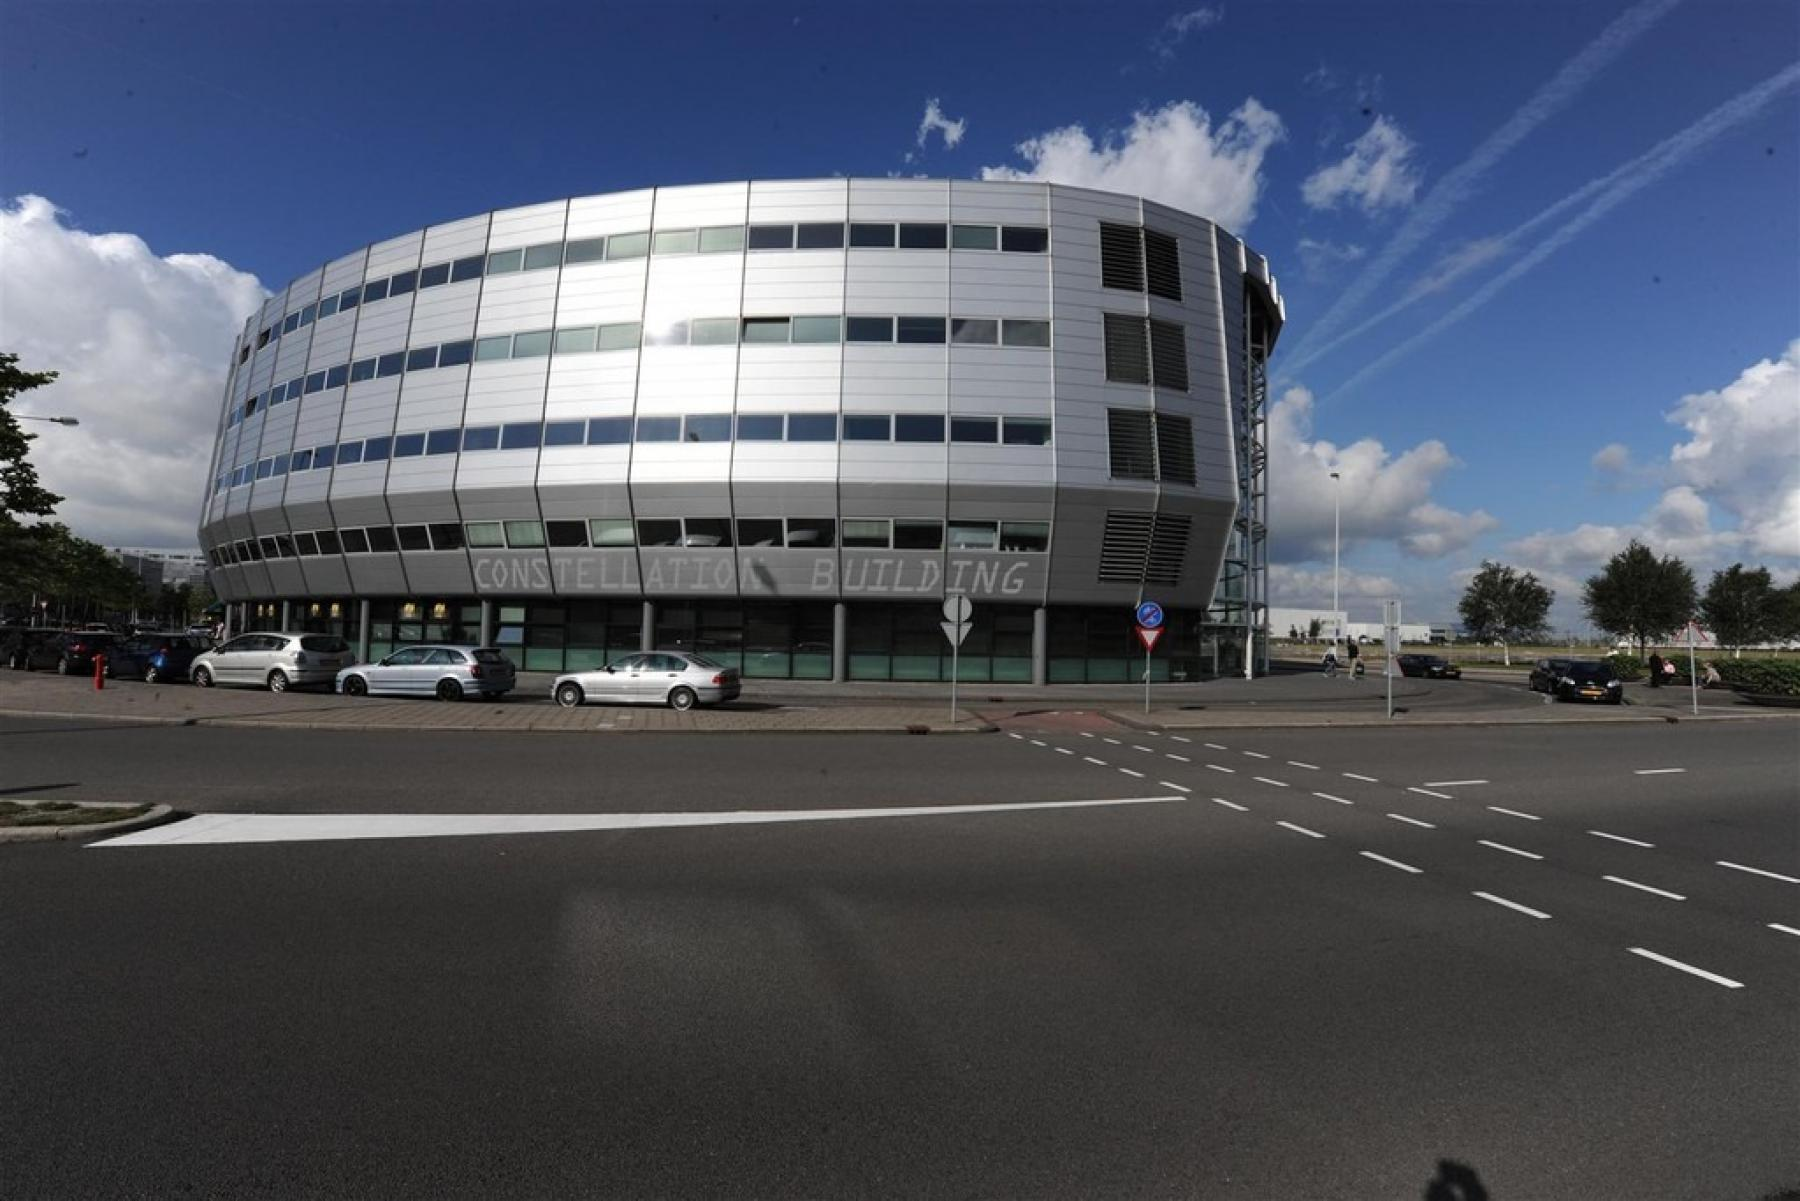 Schiphol Constellation Building